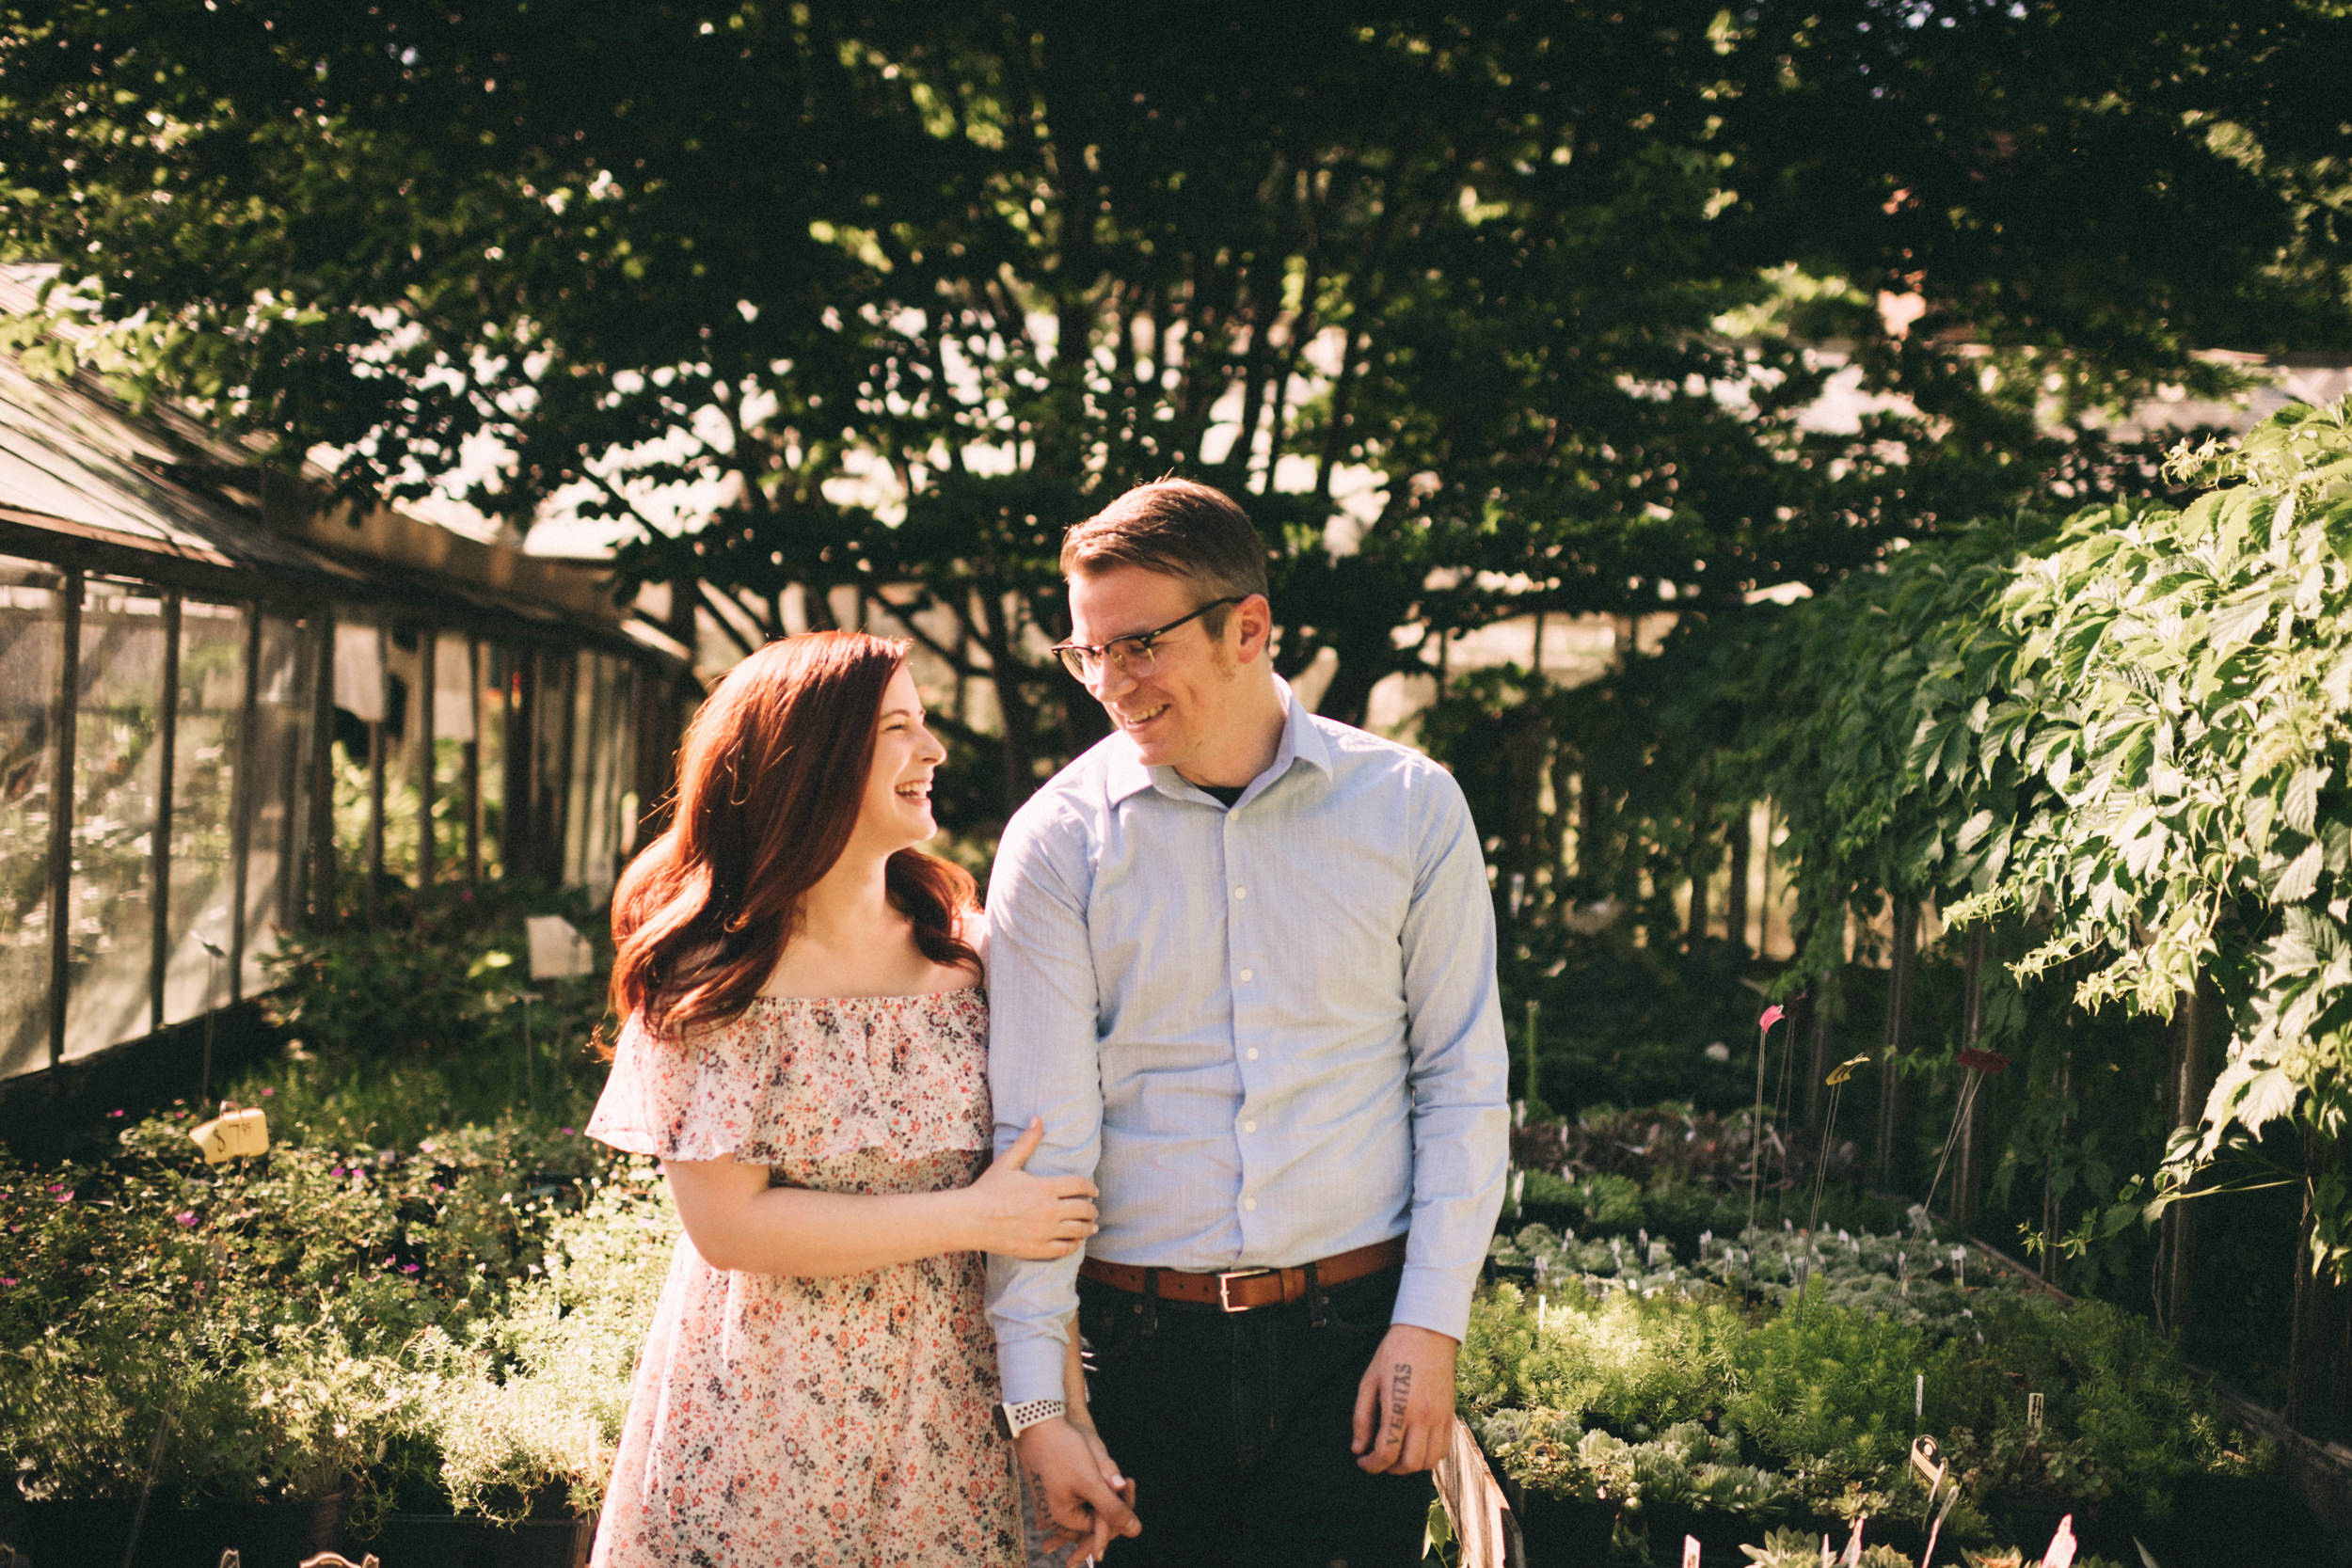 stephanie-brandon-sarah-katherine-davis-photographer-greenhouse-engagement-session-kentucky-173.jpg